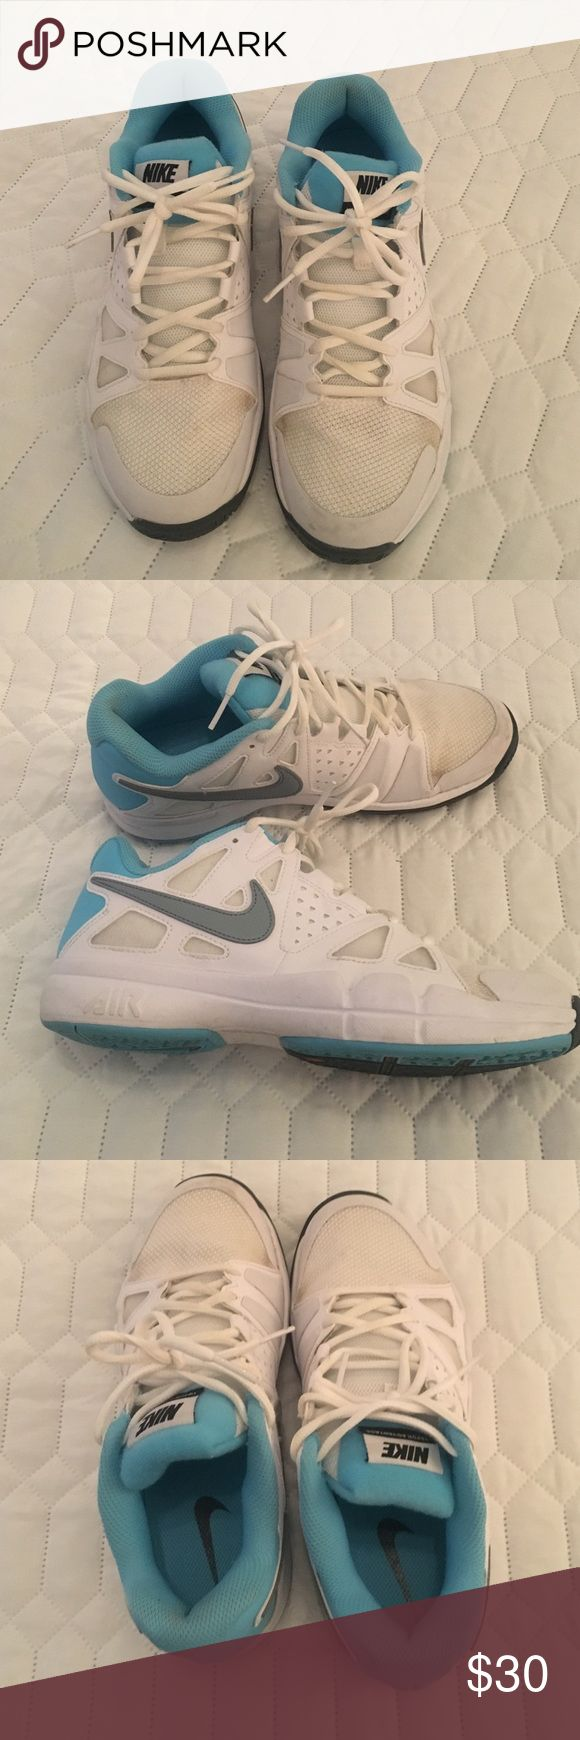 Nike Shoes Good shape only worn a handful of times. Not really my normal style. Gray swoosh on sides white with a teal color. Cute and comfy. 🤔 BUNDLE Nike Shoes Sneakers